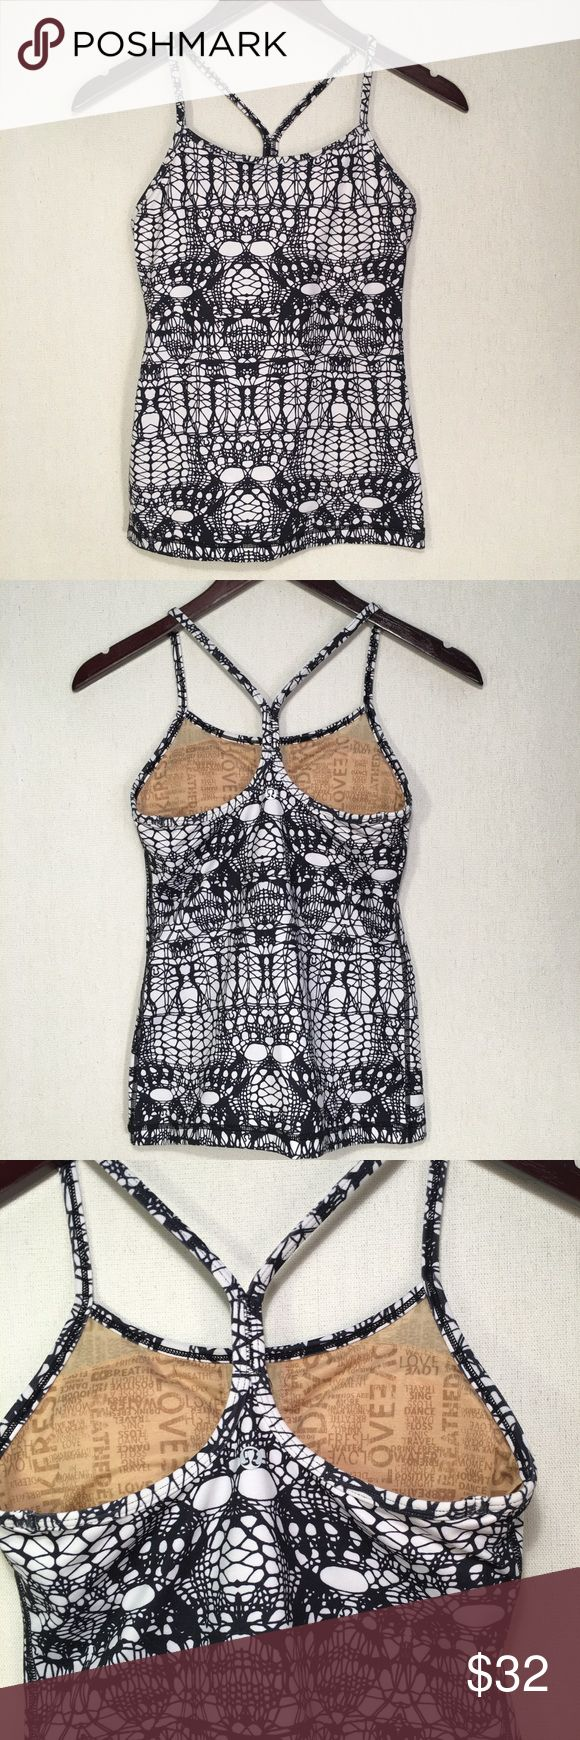 """Lululemon White Glacier Power T Tank 4 〰Excellent pre-owned condition! Bra inserts included                                                      〰Let me know if you have any questions 〰Accepting all reasonable offers made through the offer feature 〰Add any item/s to a bundle using the """"add to bundle feature"""" to get an additional private discount!🌵✨ lululemon athletica Tops Tank Tops"""